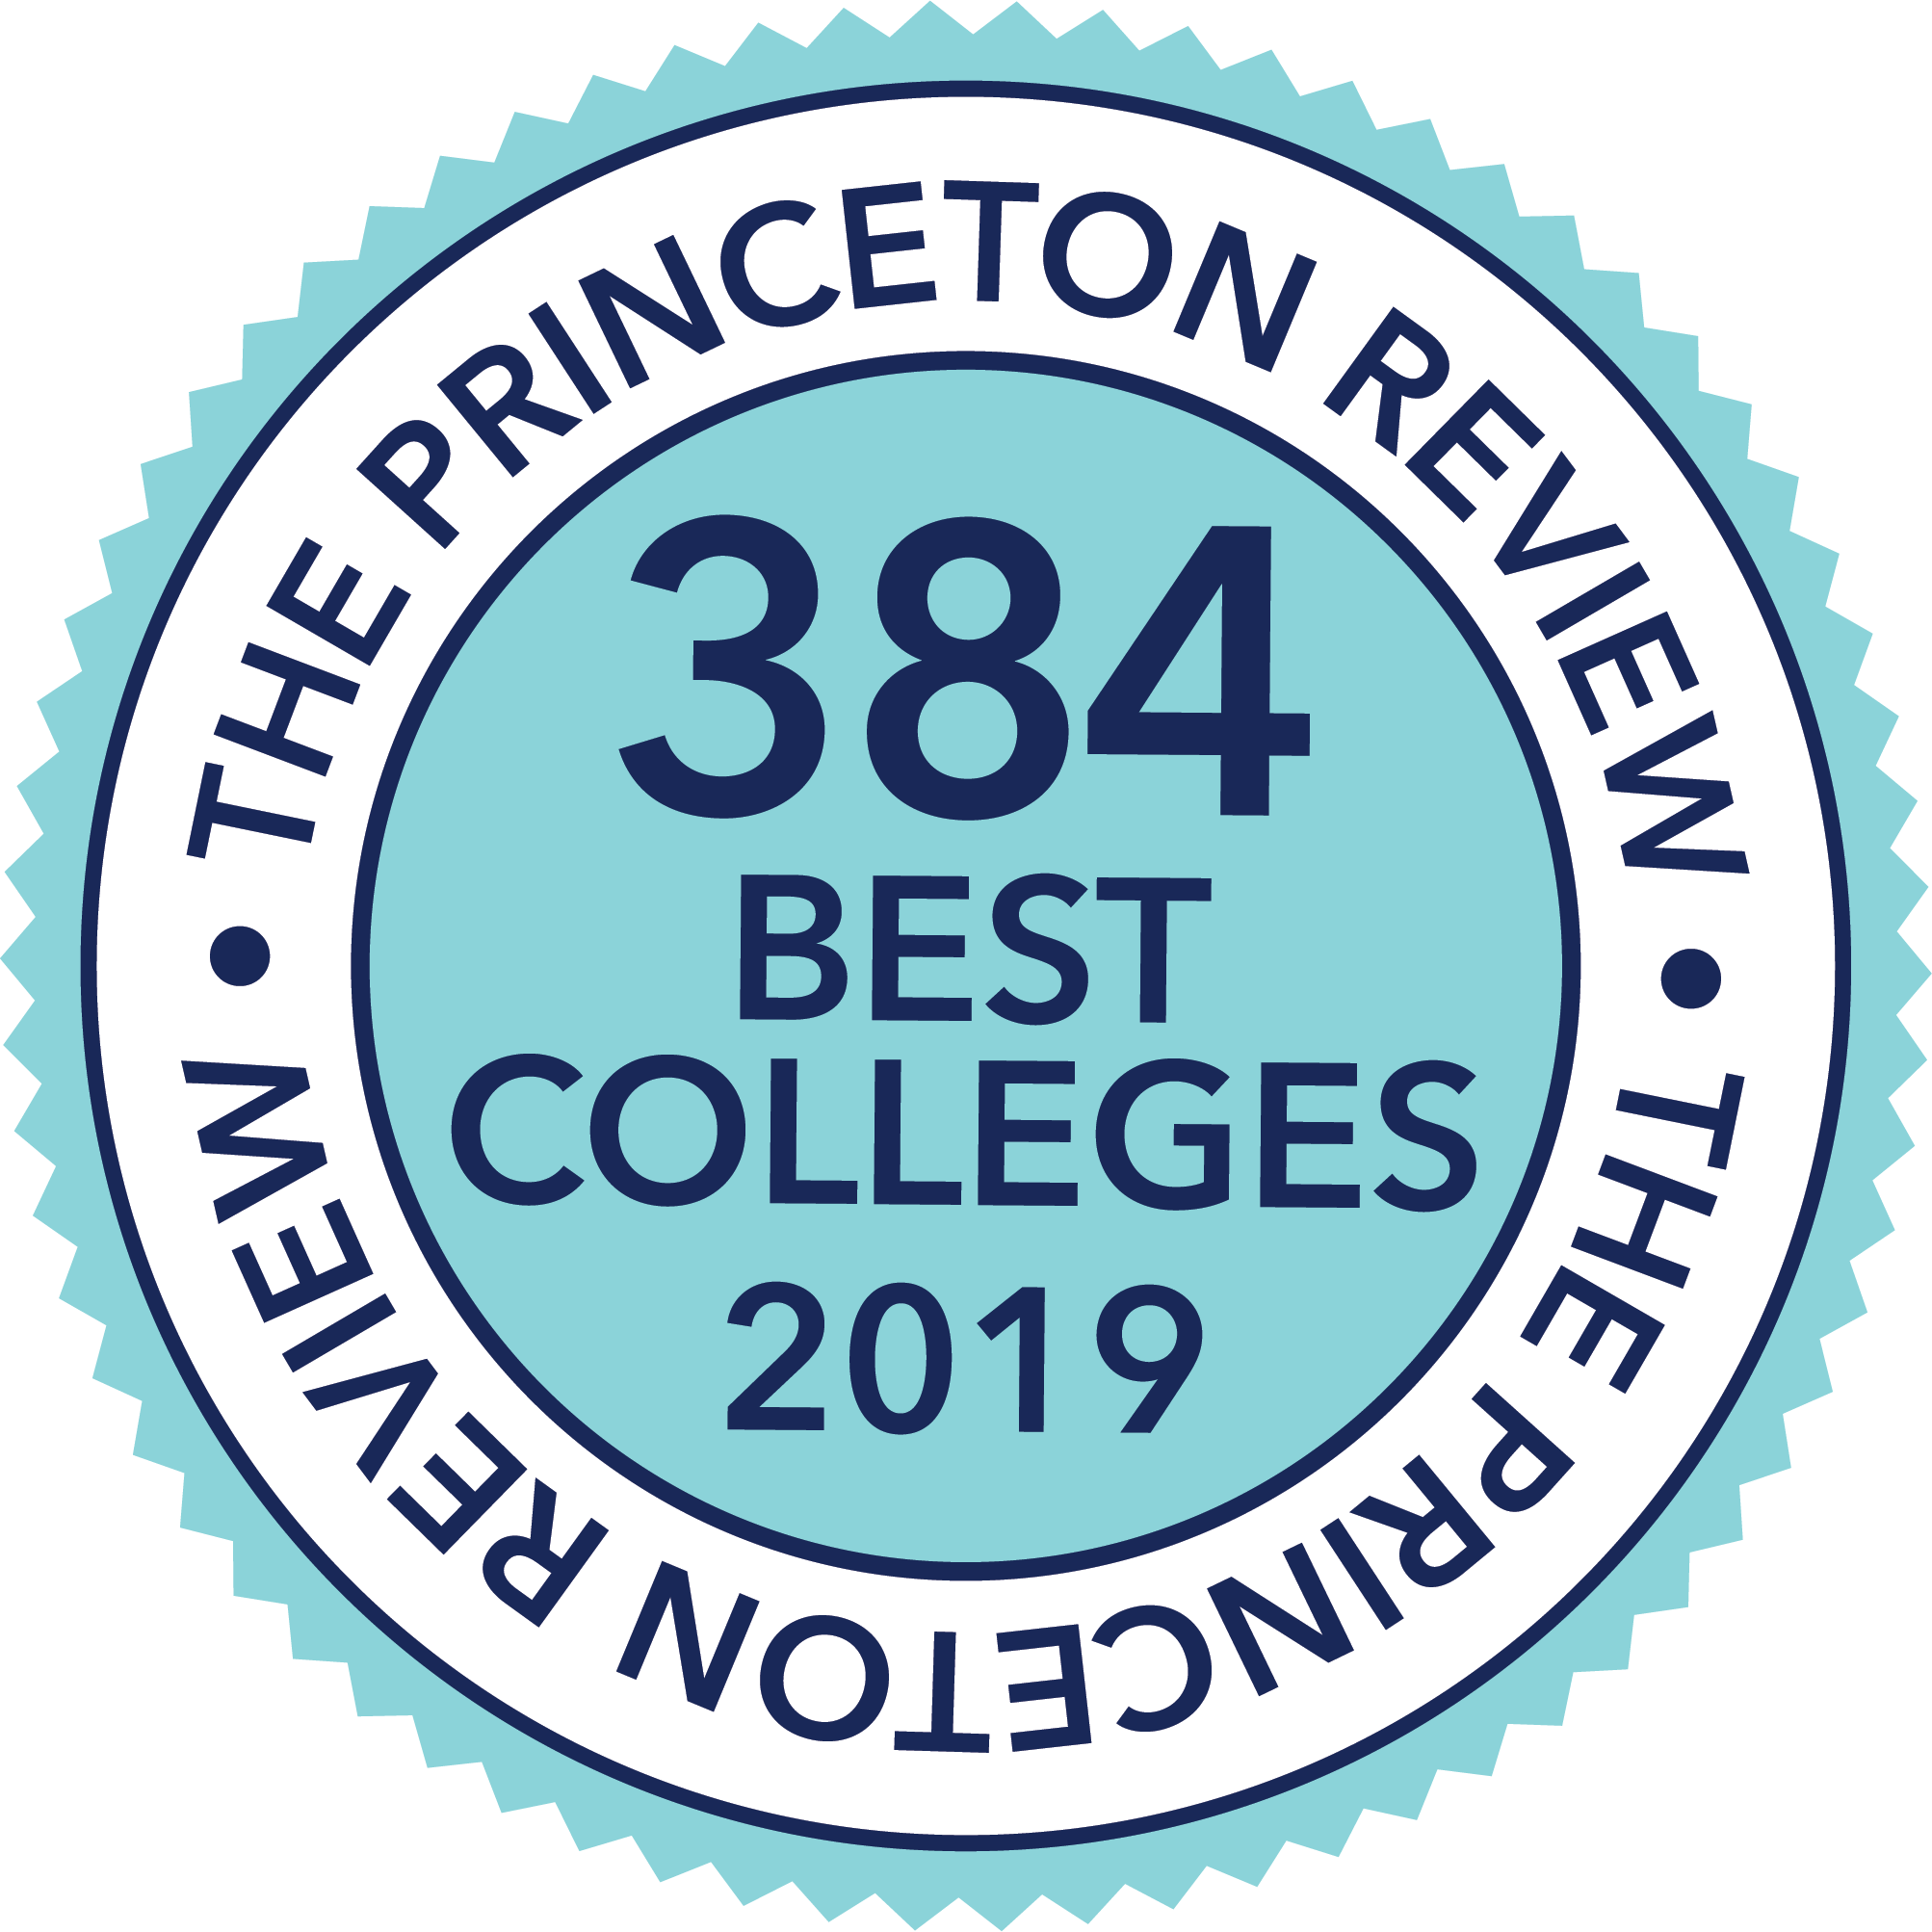 Princeton Review 384 Best Colleges